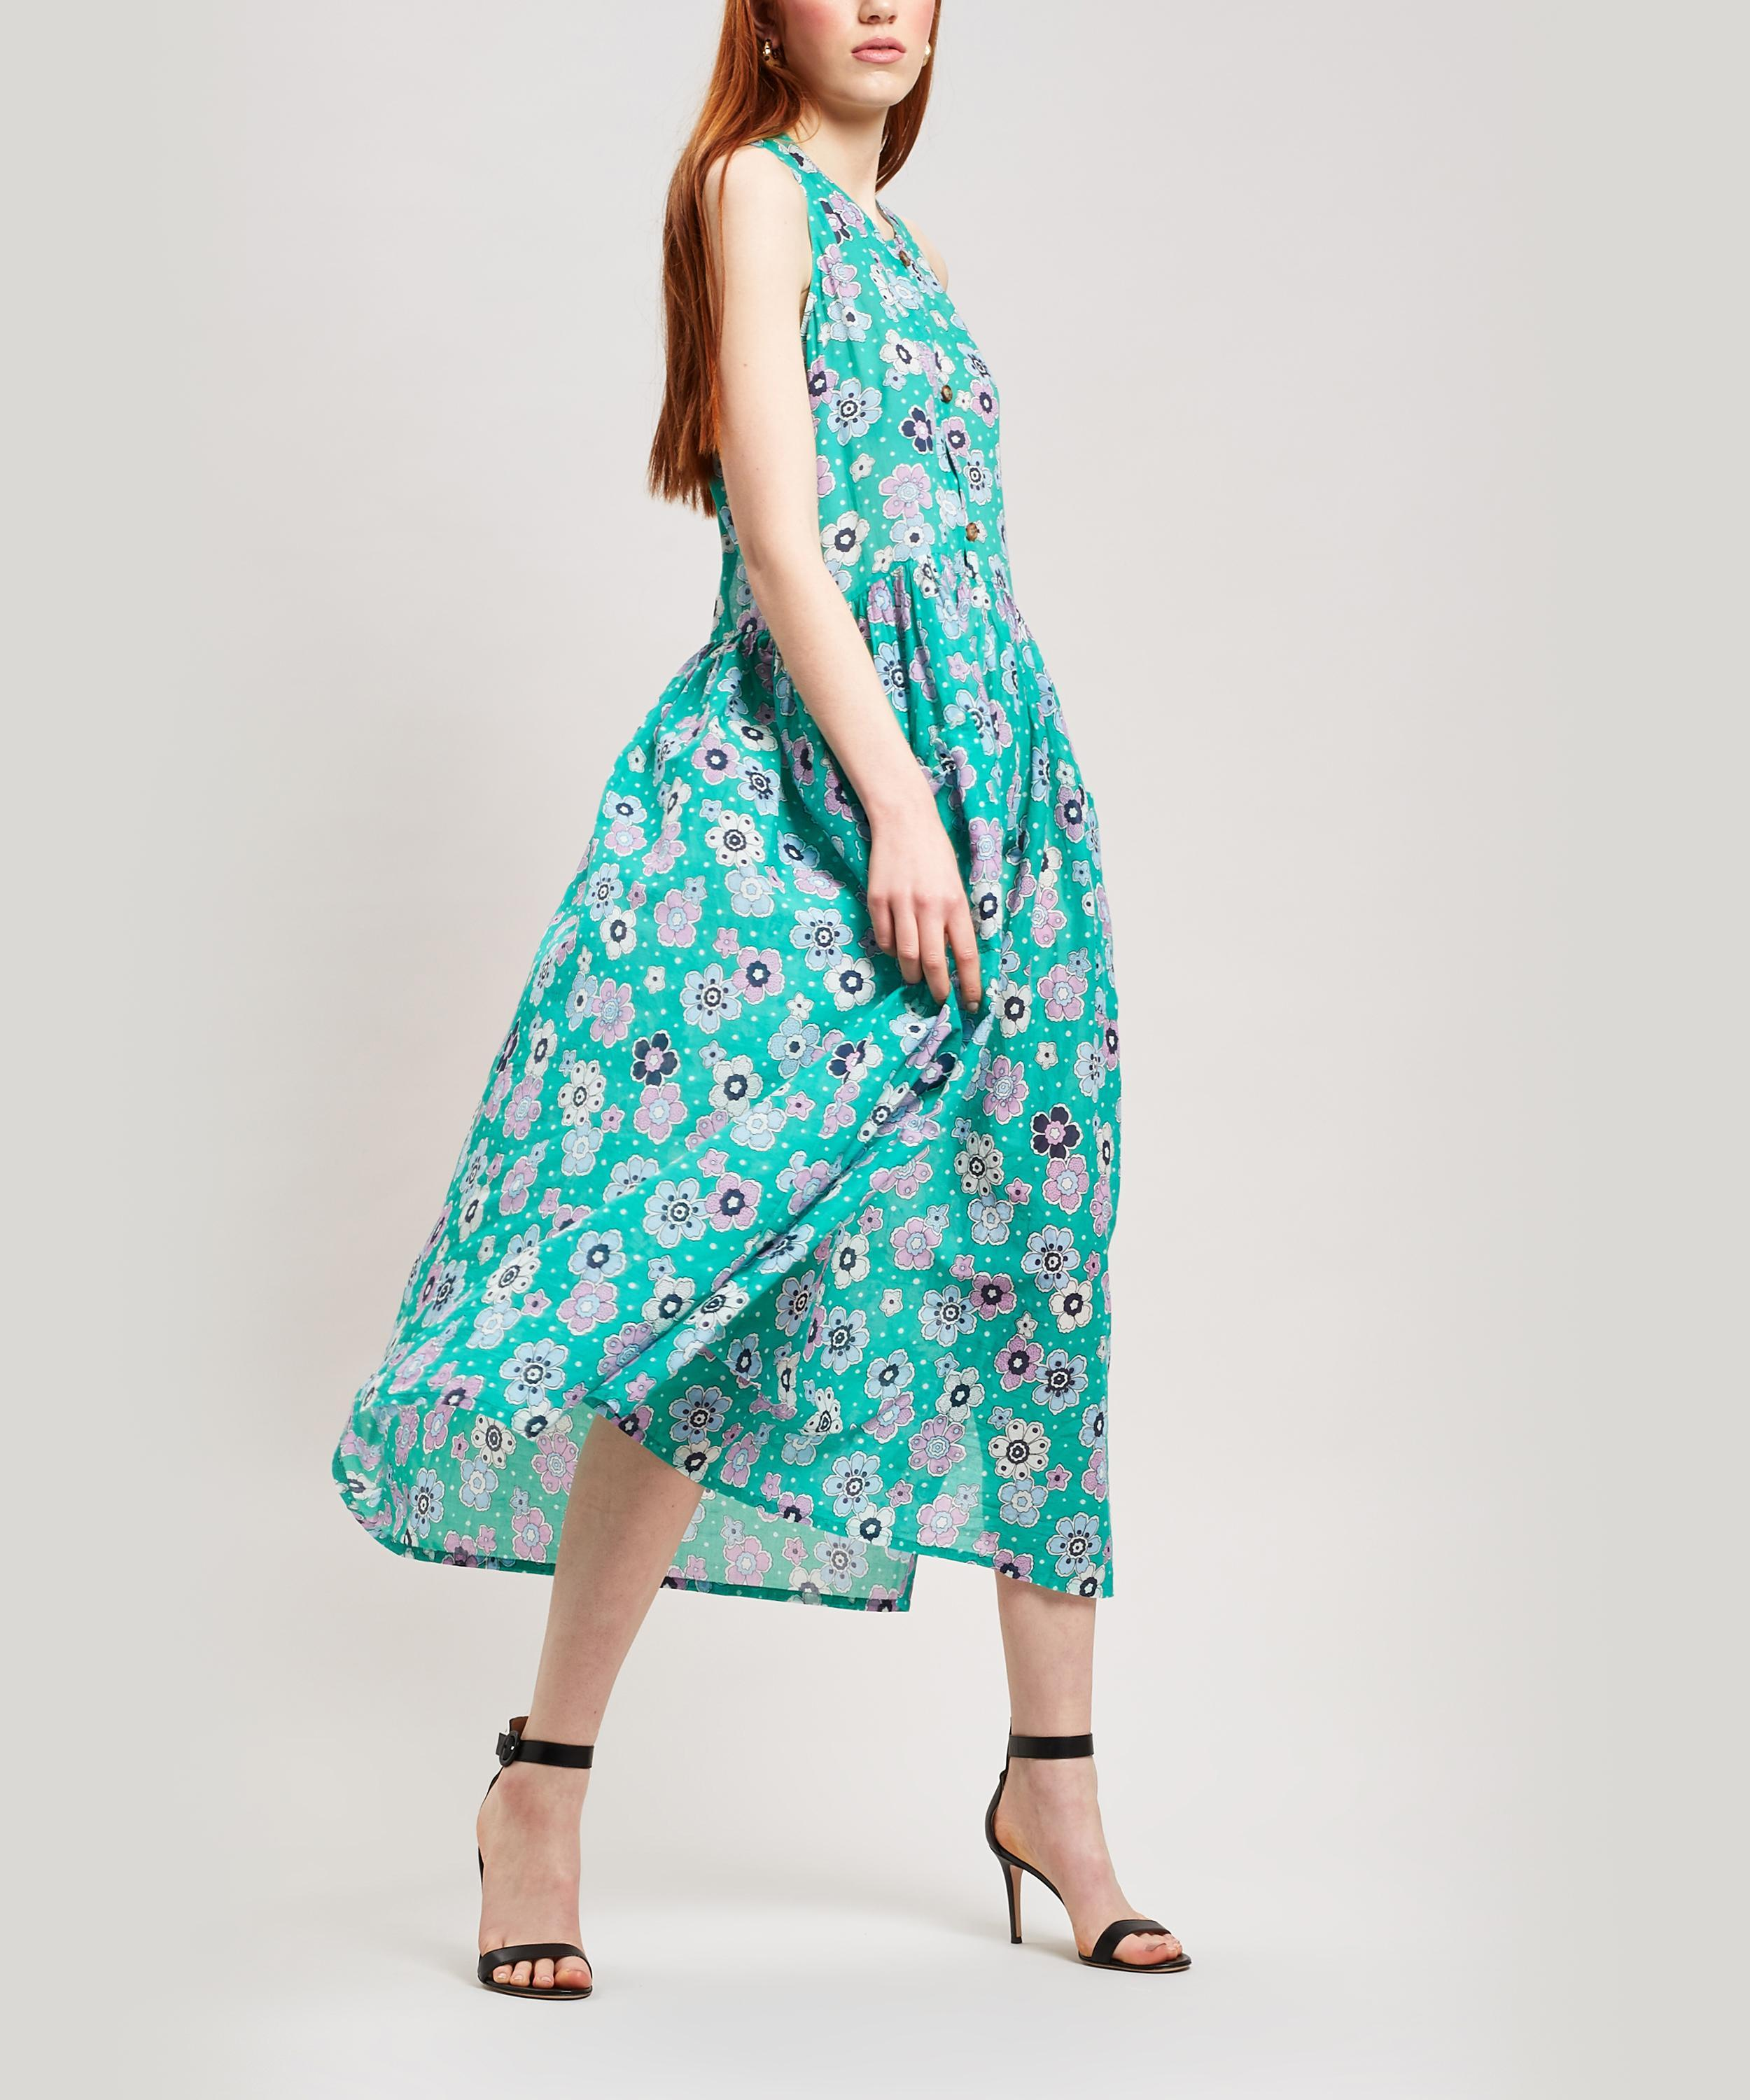 7667b958848 Lyst - M.i.h Jeans Leia Floral Cotton Trapeze Maxi-dress in Blue